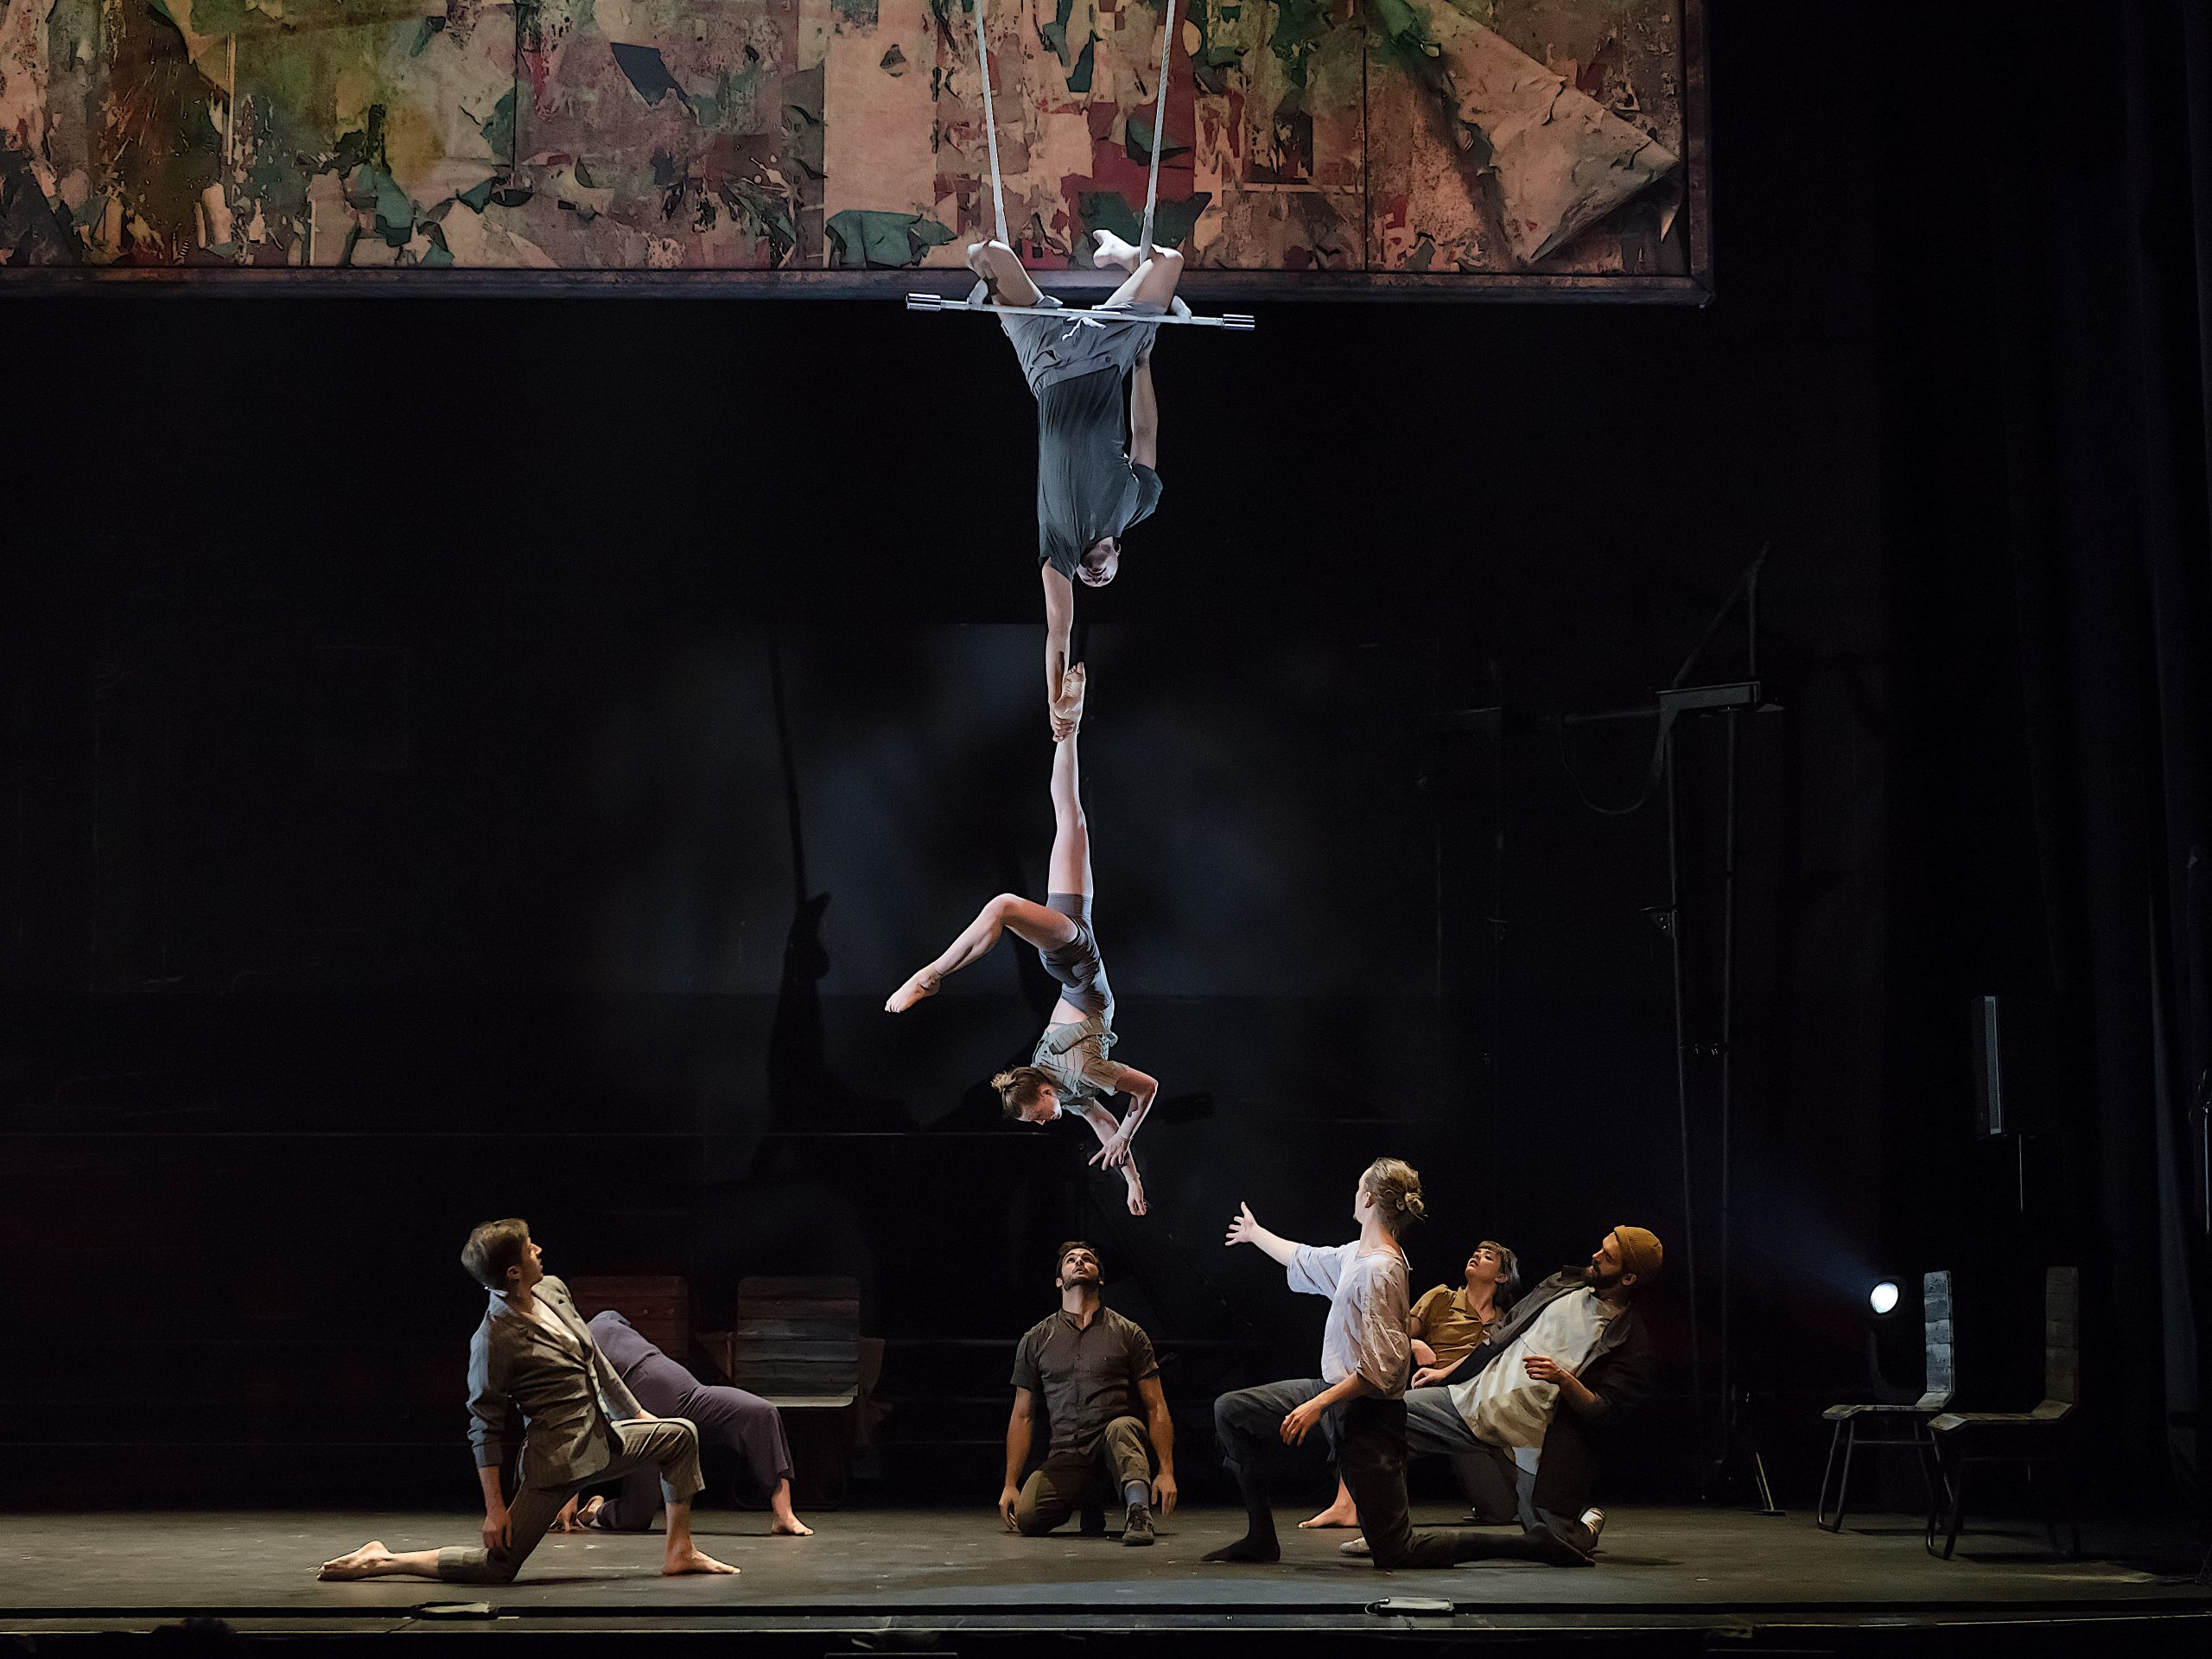 The 7 Fingers performs Passagers. Circus artists Sabine Van Rensburg and Sereno Aguilar Izzo perform an awe-inspiring trapeze act, hanging upside down above the stage.